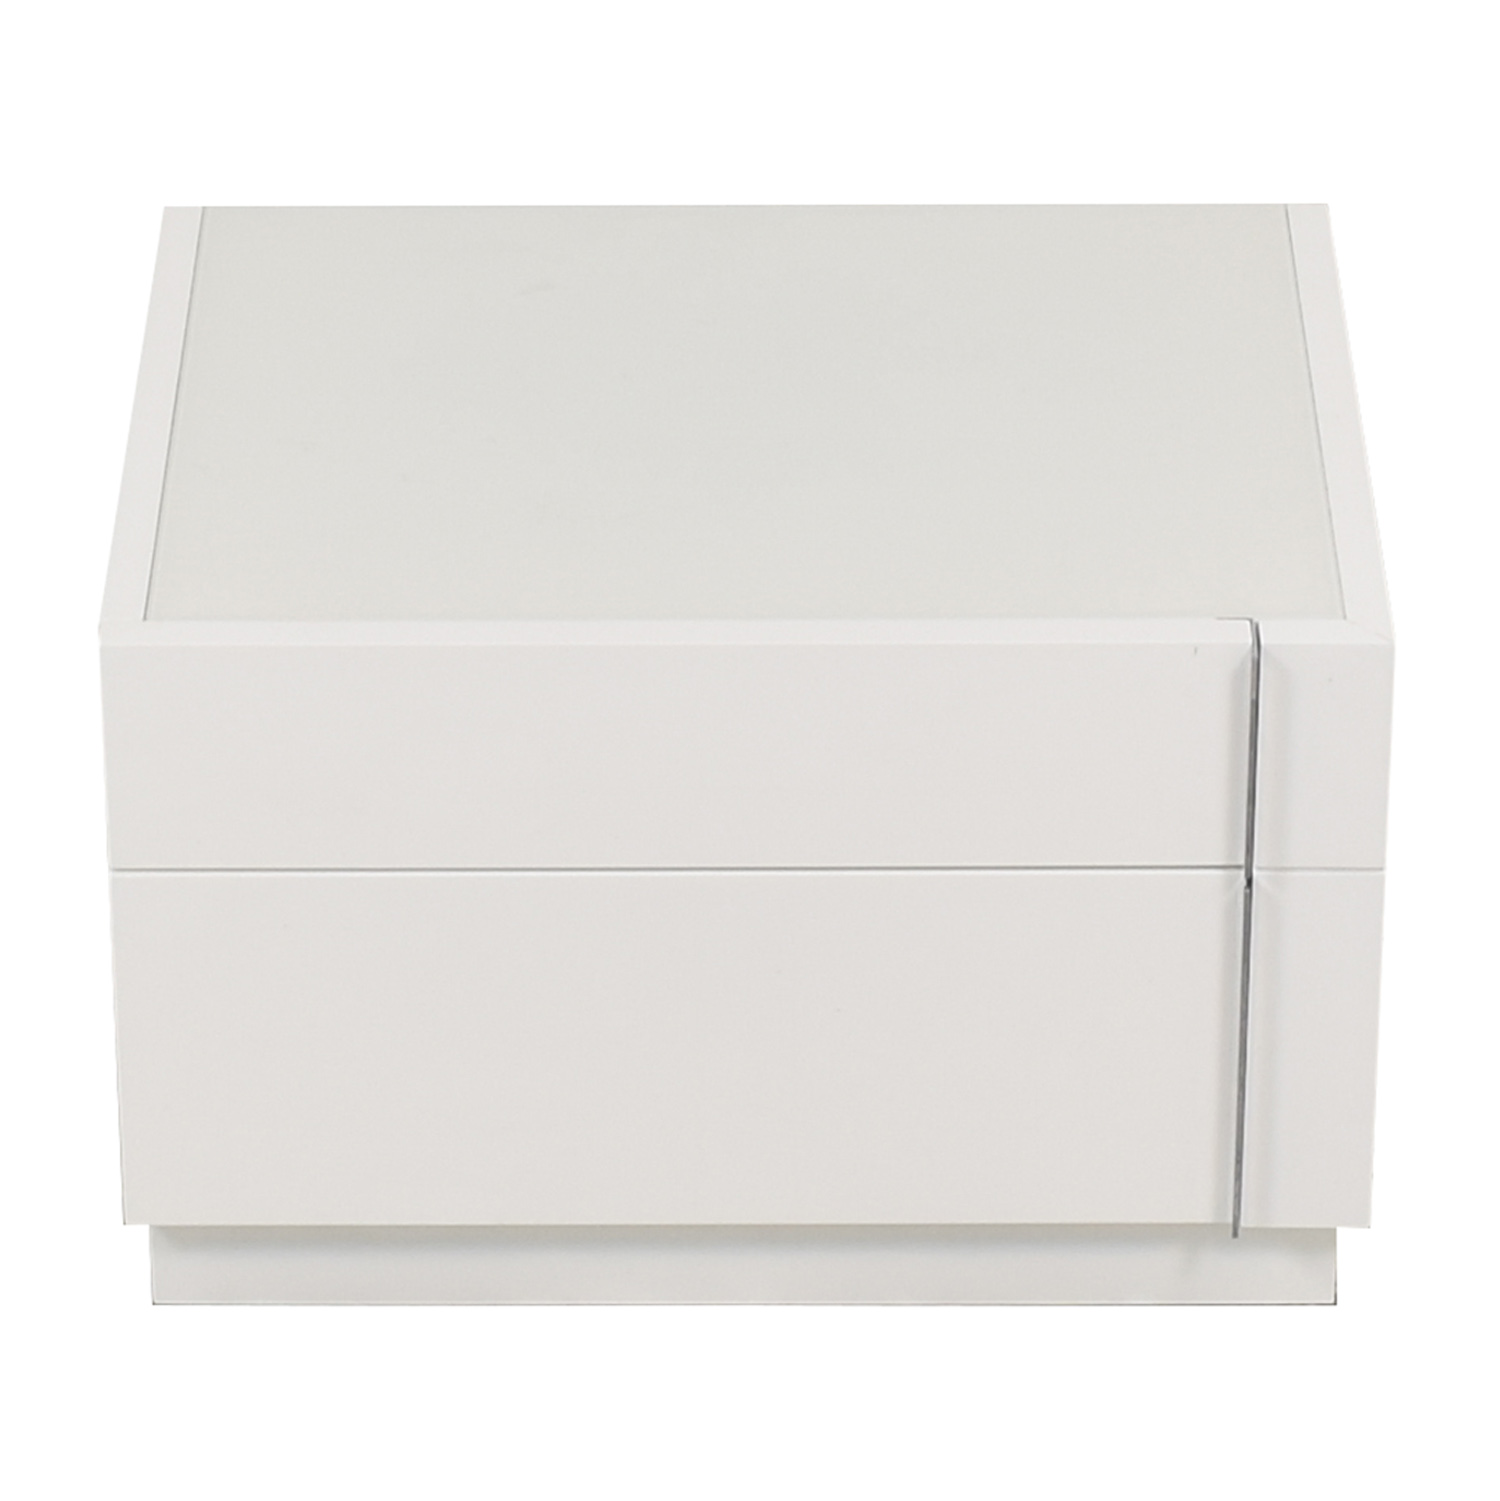 J&M Furniture J&M Furniture Amora Premium Wood Veneer Right Nightstand white